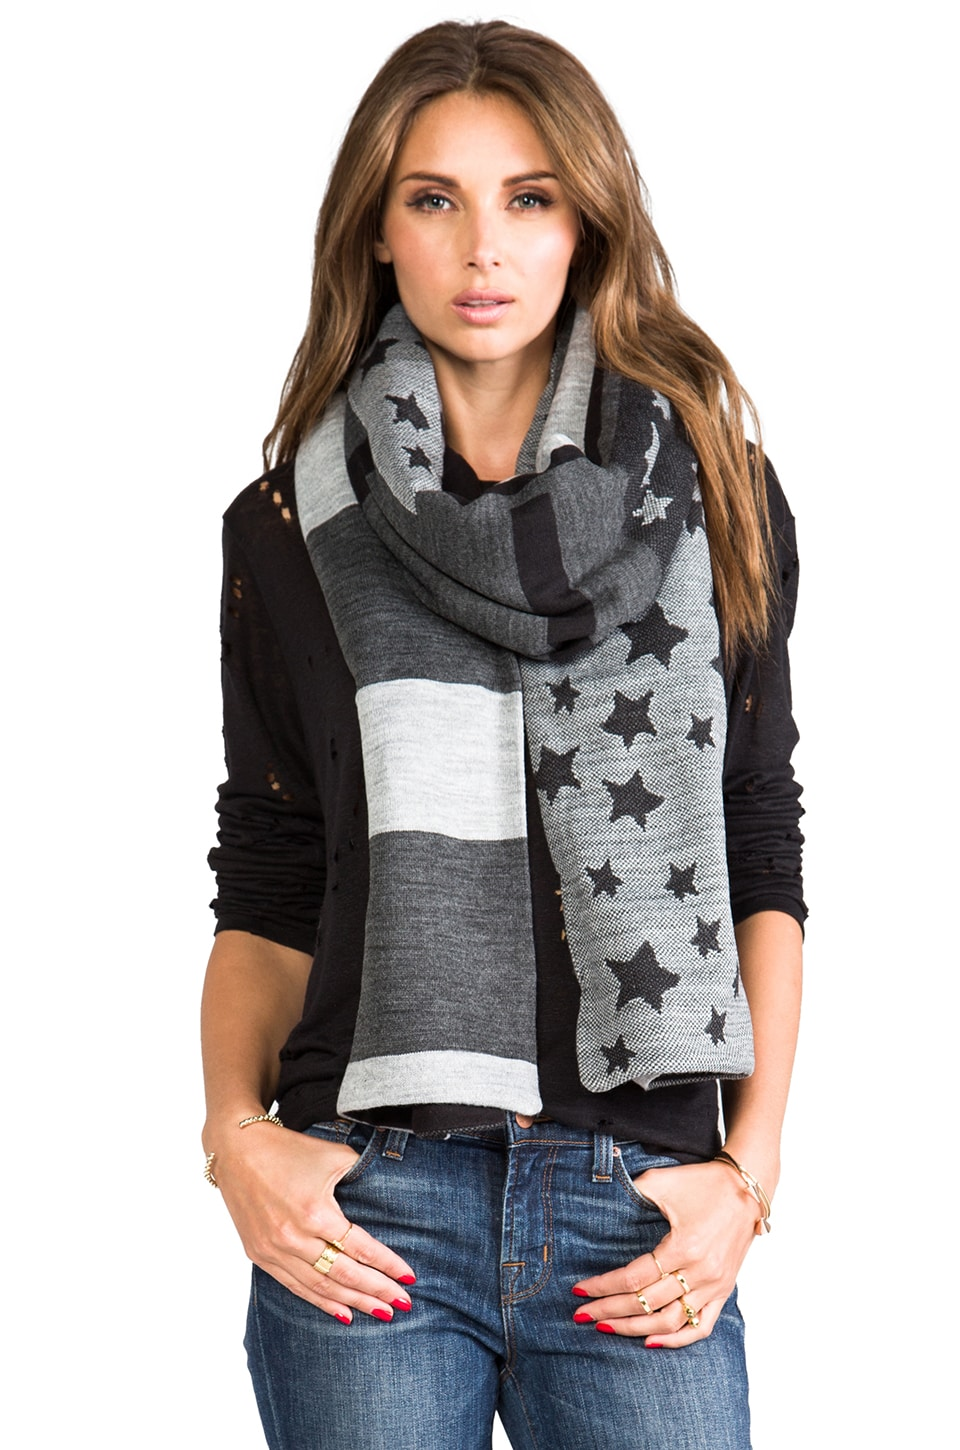 Plush Stars & Stripes Scarf in Black/Heather